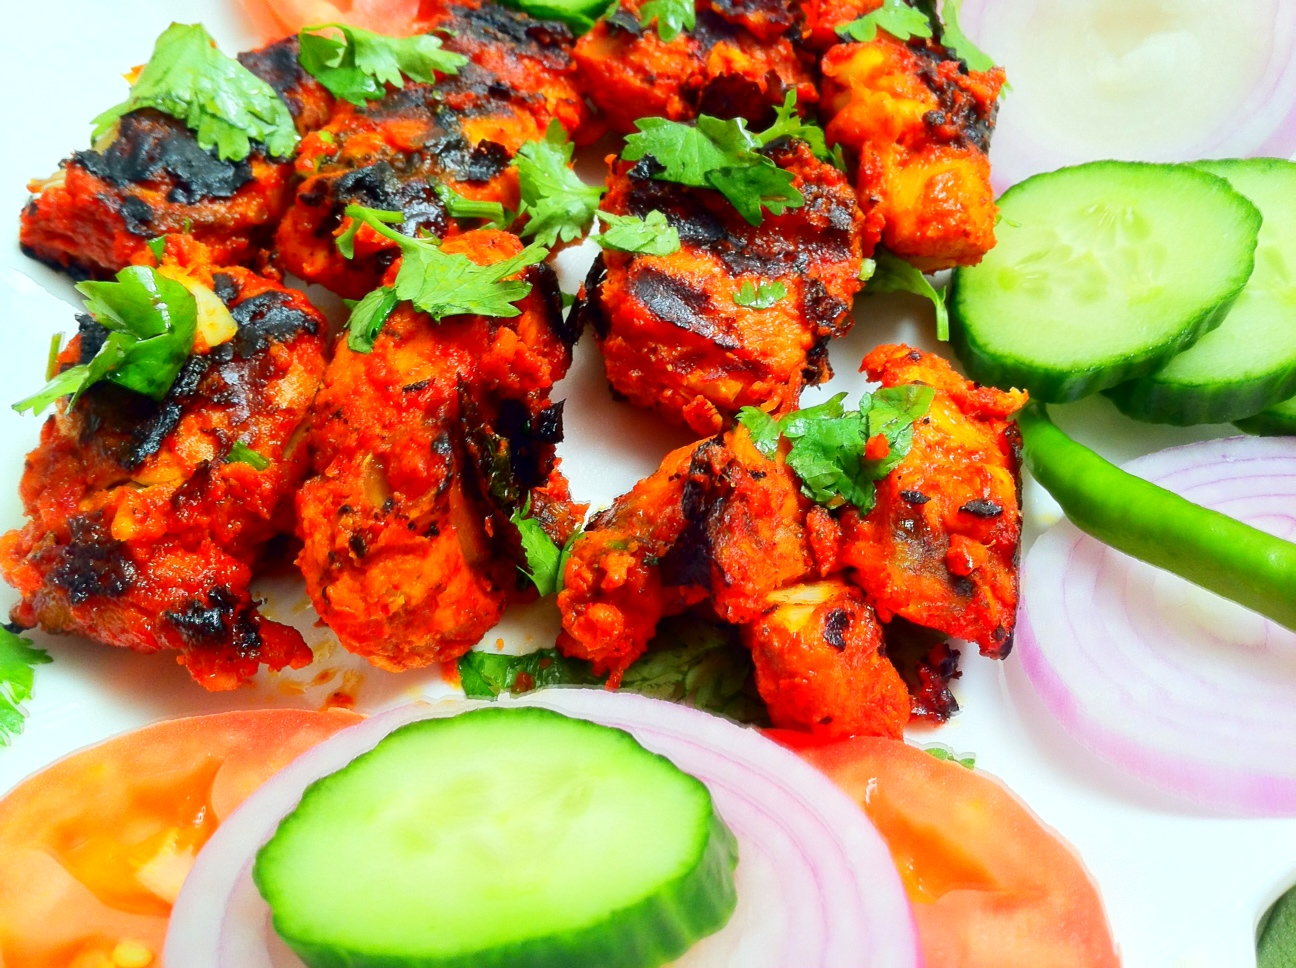 Fish Tikka Boneless Fish Pieces In Grill Oven Spicy Fish Recipe